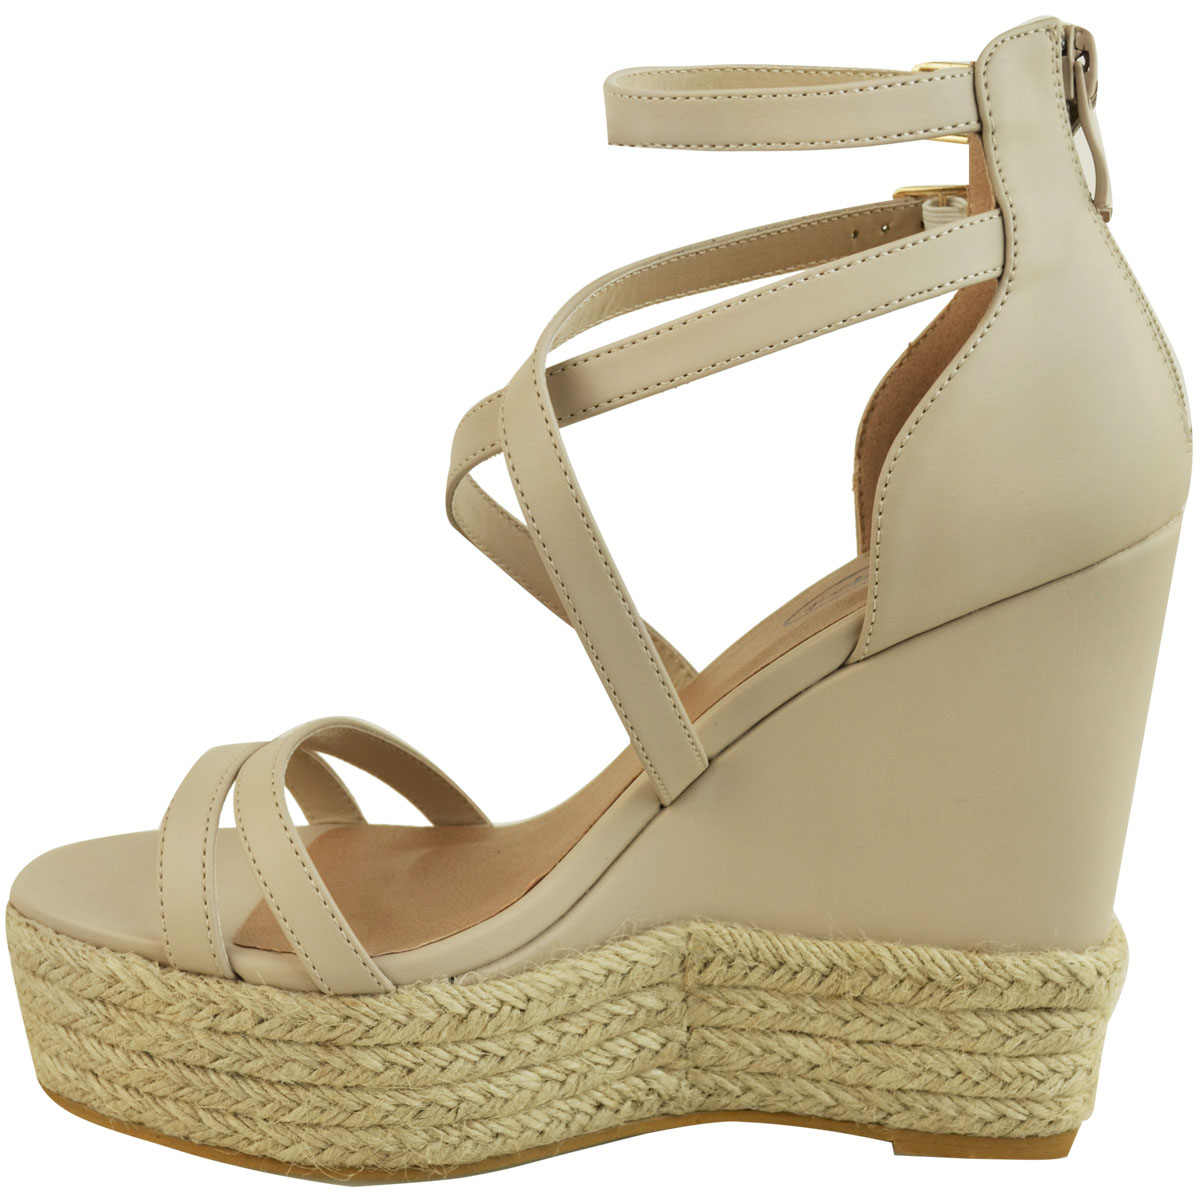 New-Womens-Ladies-Wedge-Espadrille-Sandals-Strappy-Rose-Gold-Summer-Shoes-Size thumbnail 20